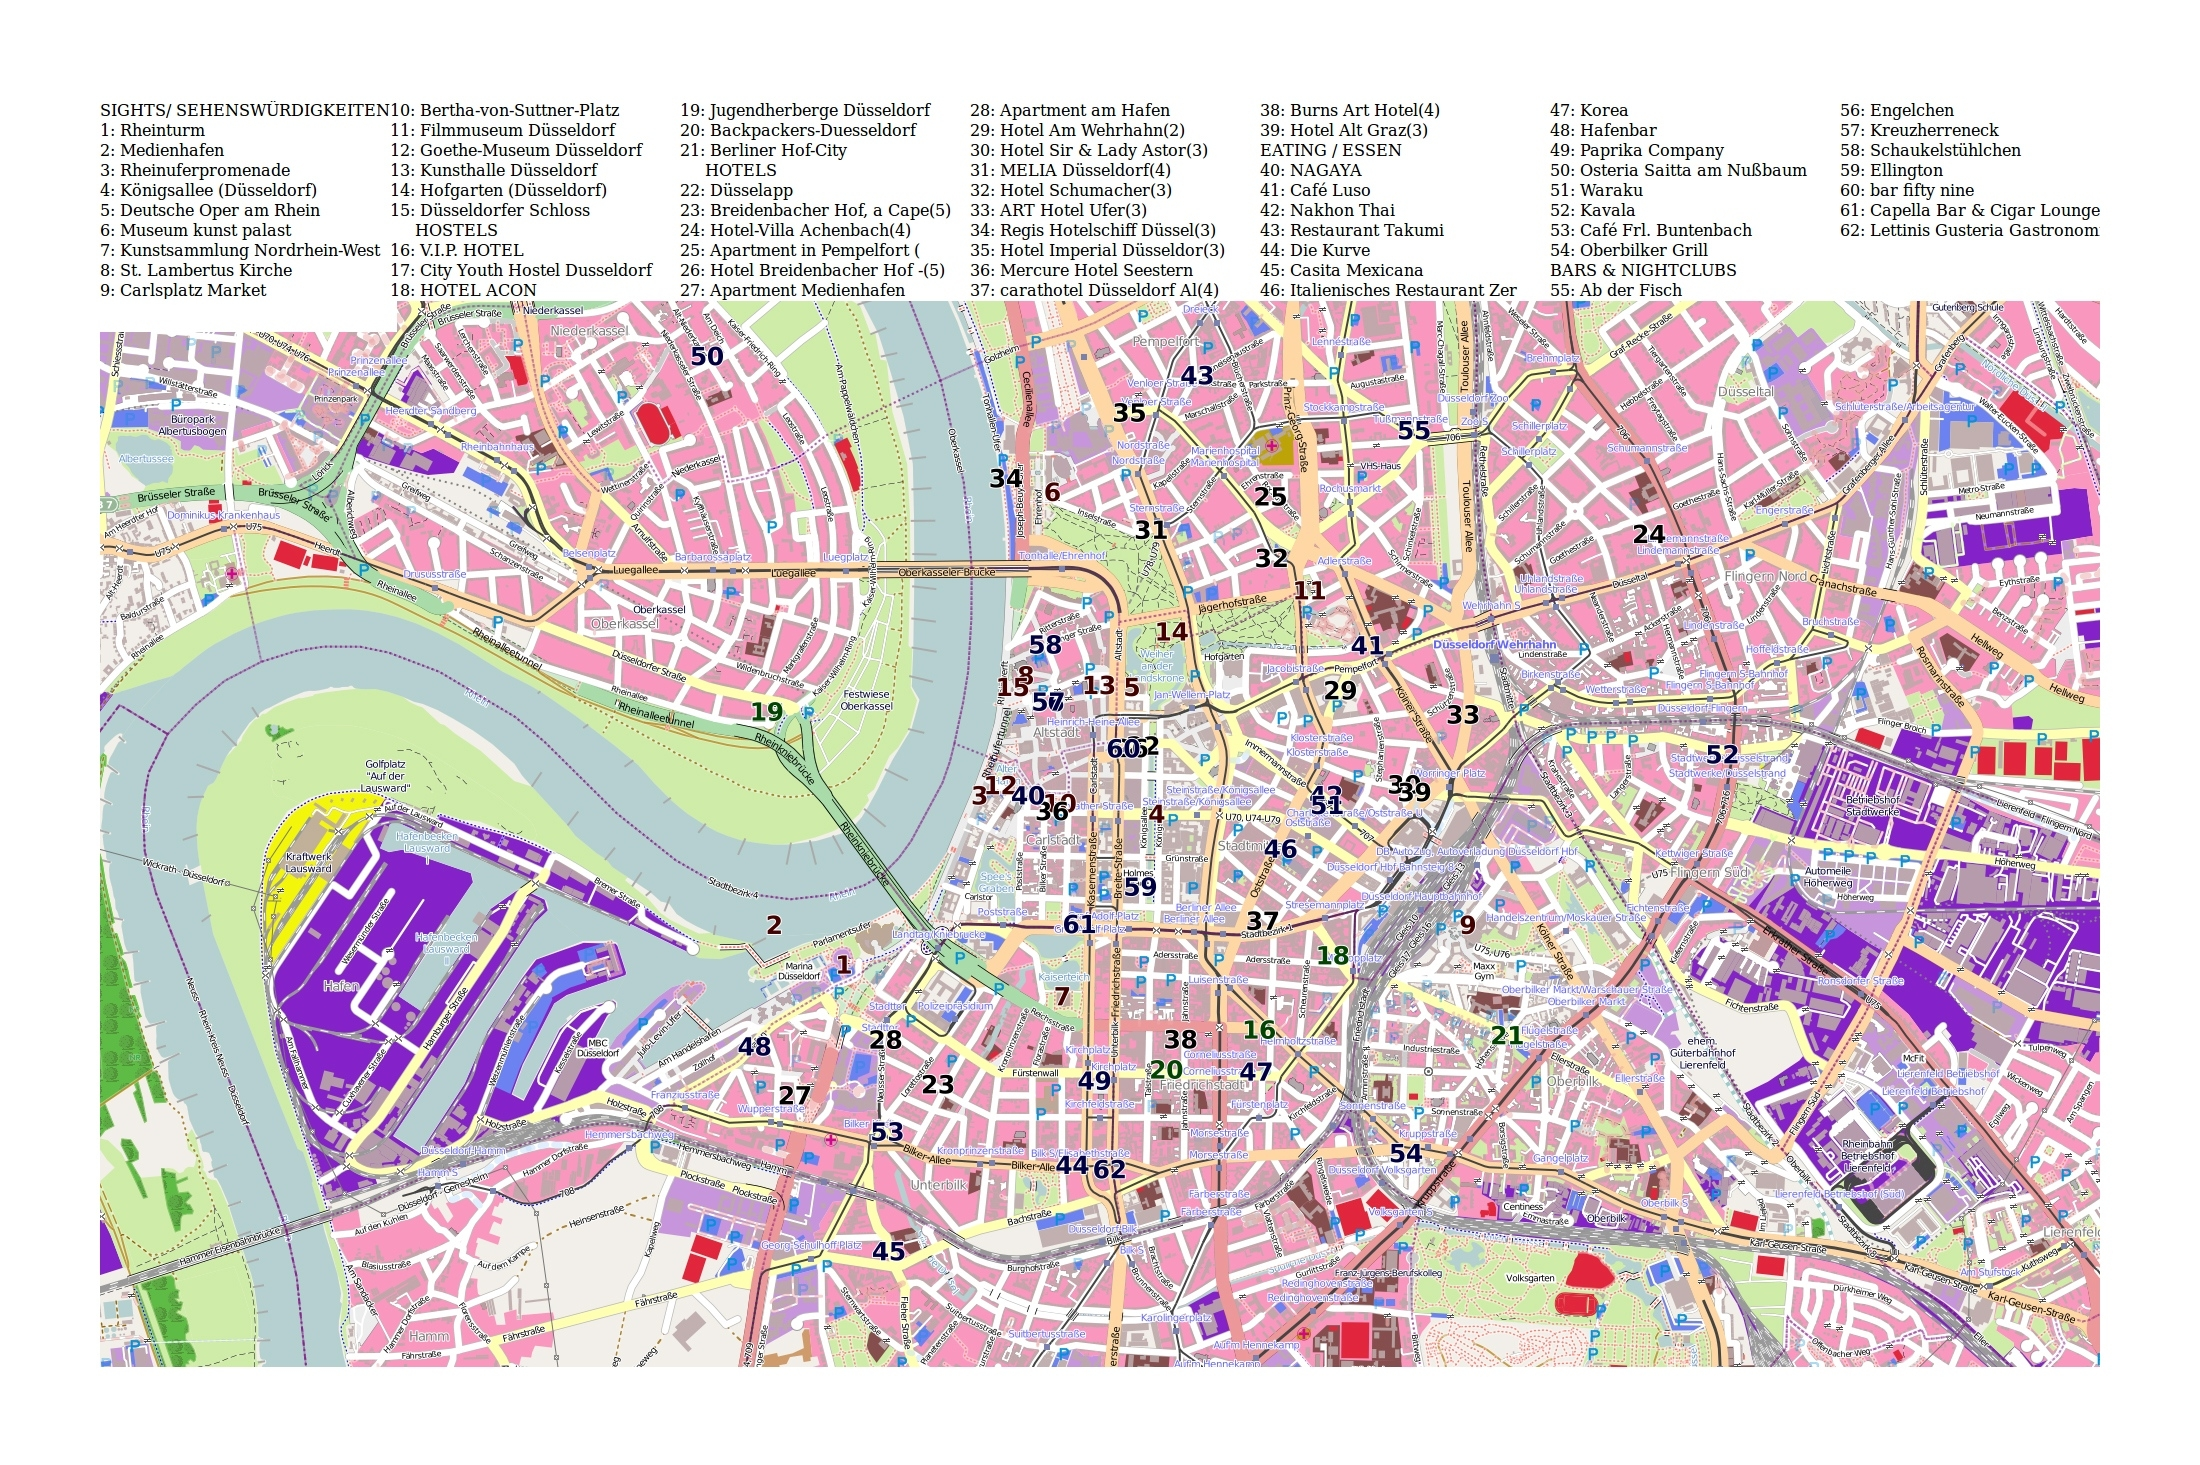 Large Tourist Map Of Dusseldorf   Dusseldorf   Germany   Europe with regard to Where Is Dusseldorf Germany On The Map